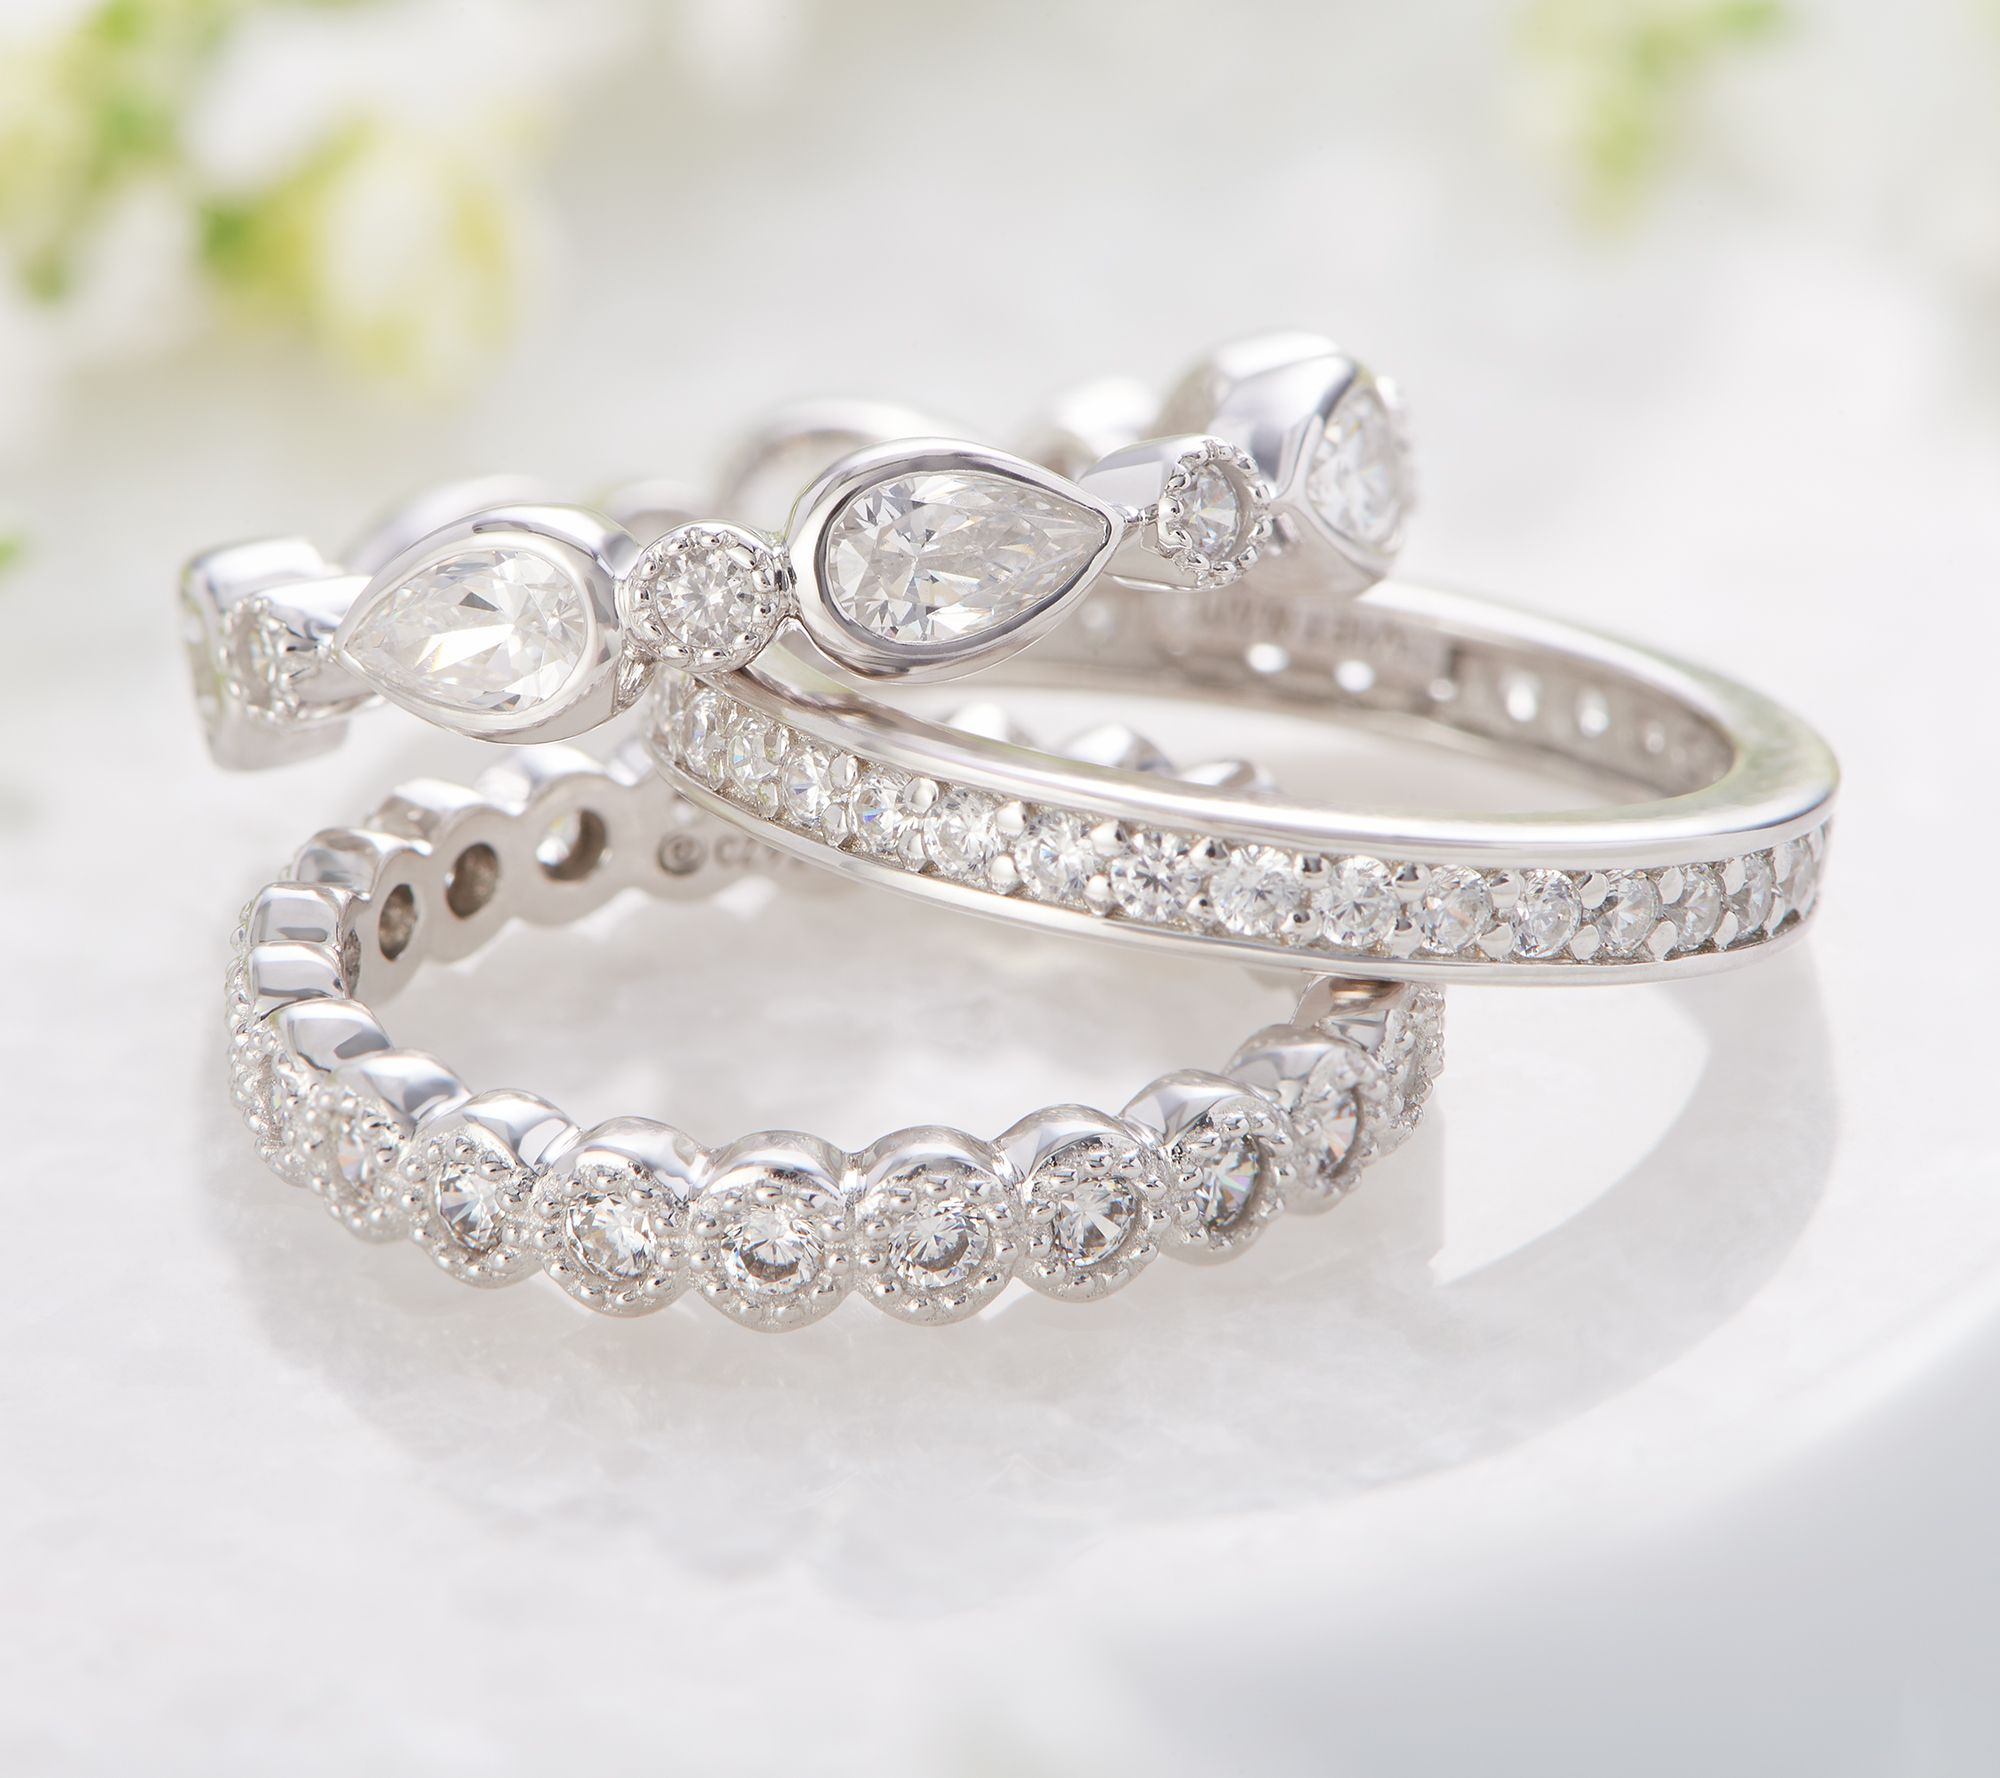 690b917a8dc9f QVC) Q2 - Diamonique Set of 3 Stackable Rings Sterling Silver ...